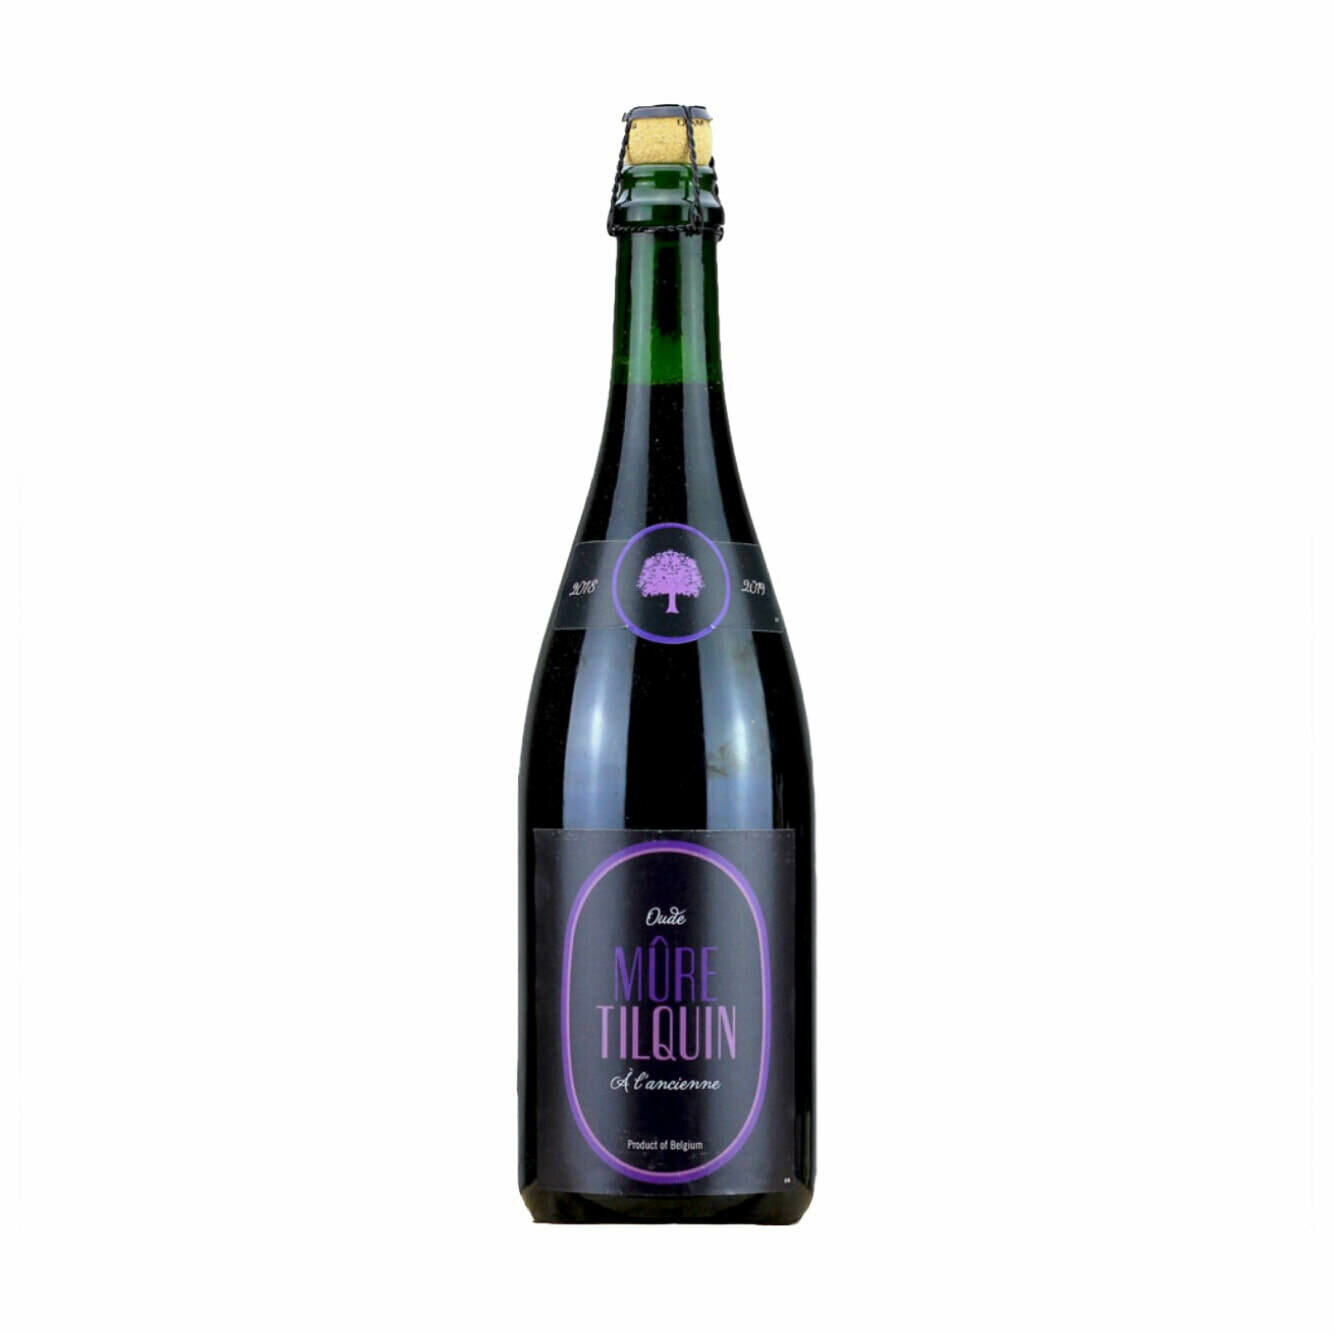 Tilquin Oude Mure Lambic